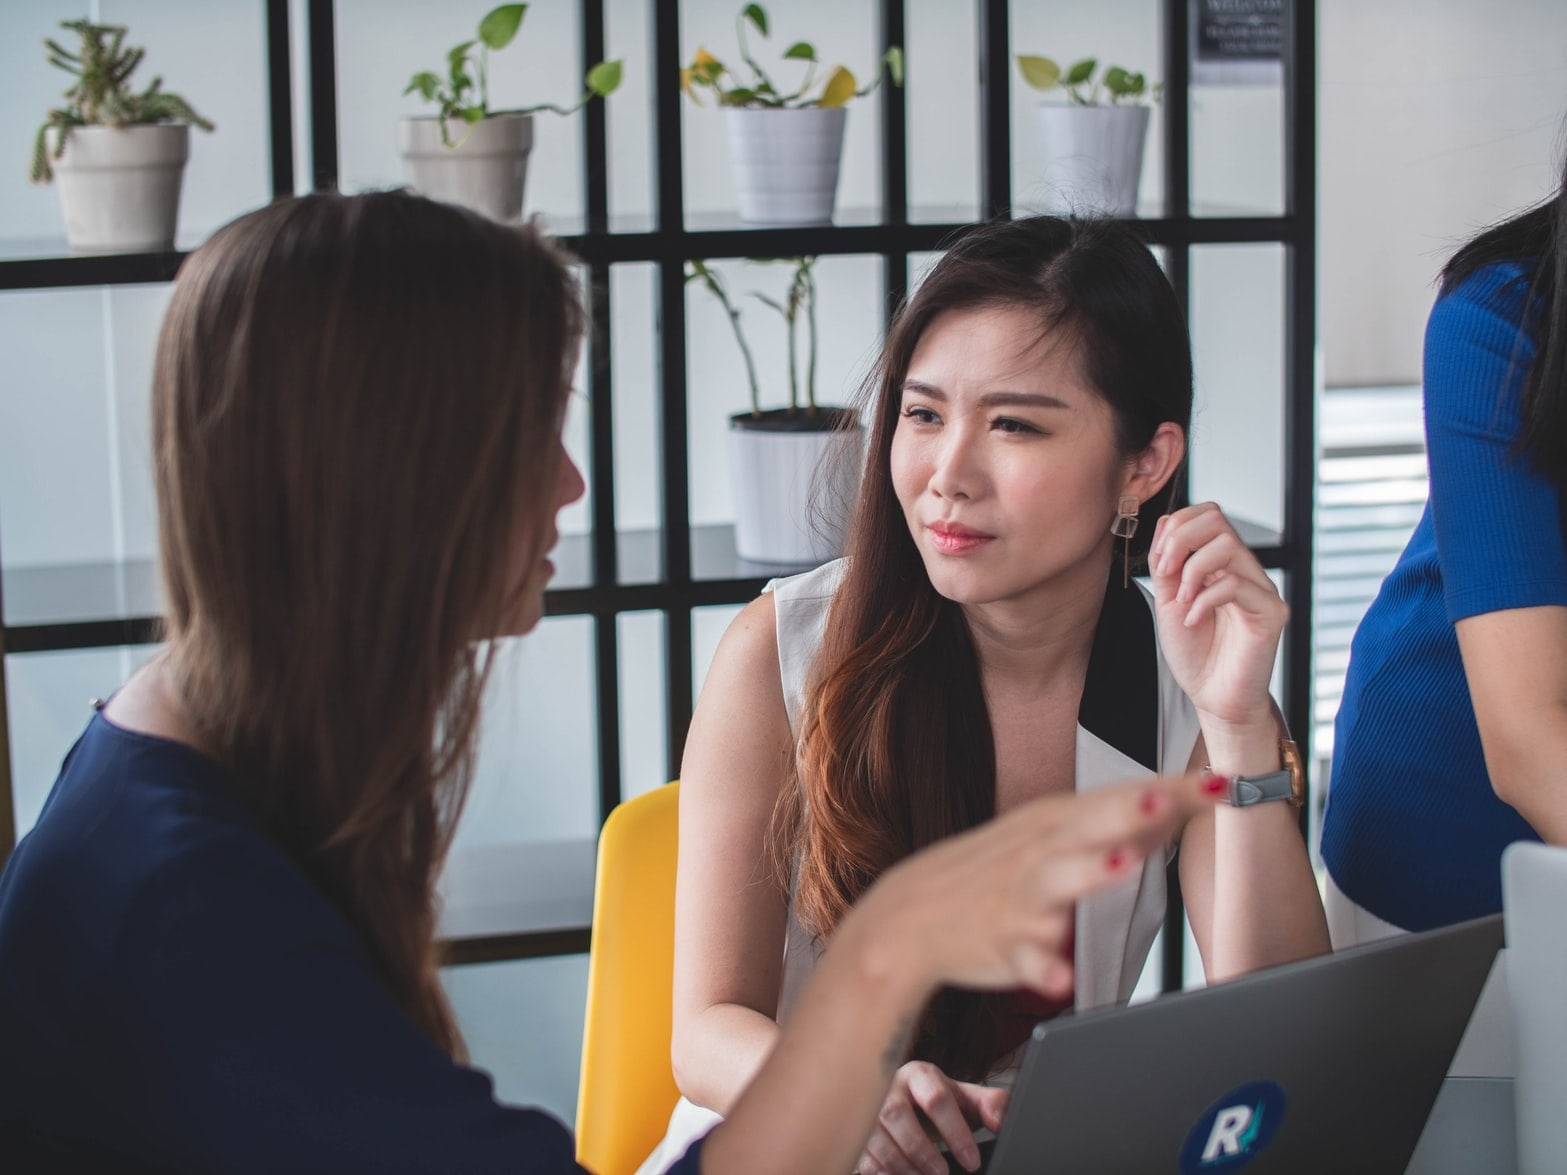 Three Questions to Ask the HR Manager Before an Interview